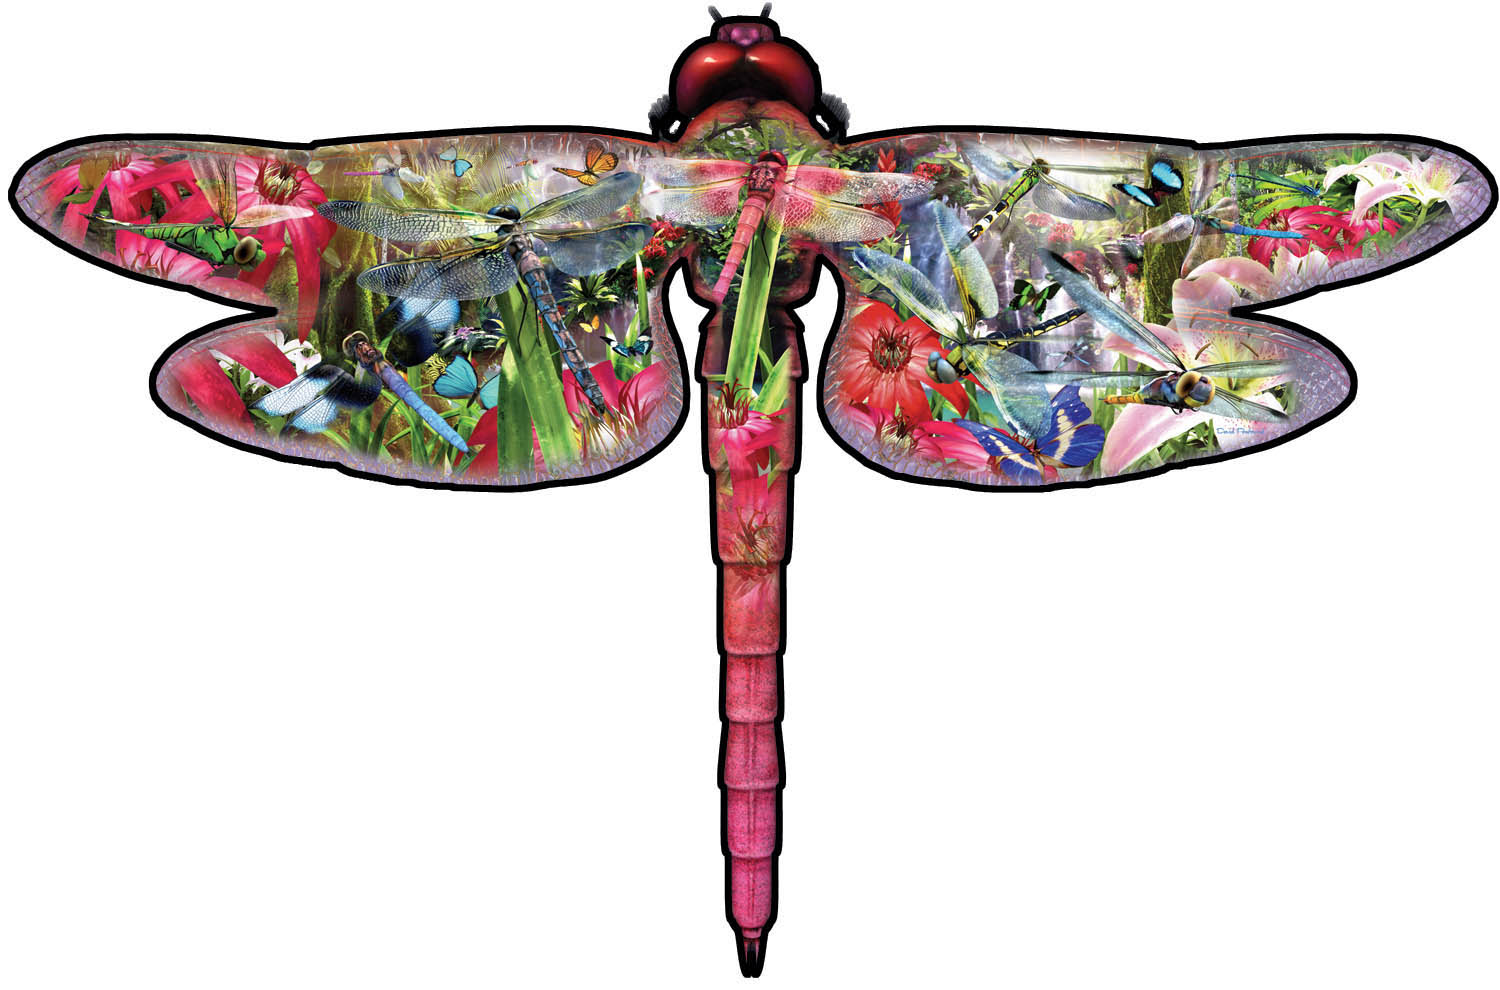 sunsout-xxl-teile-david-penfound-dragon-fly-850-teile-puzzle-sunsout-95208